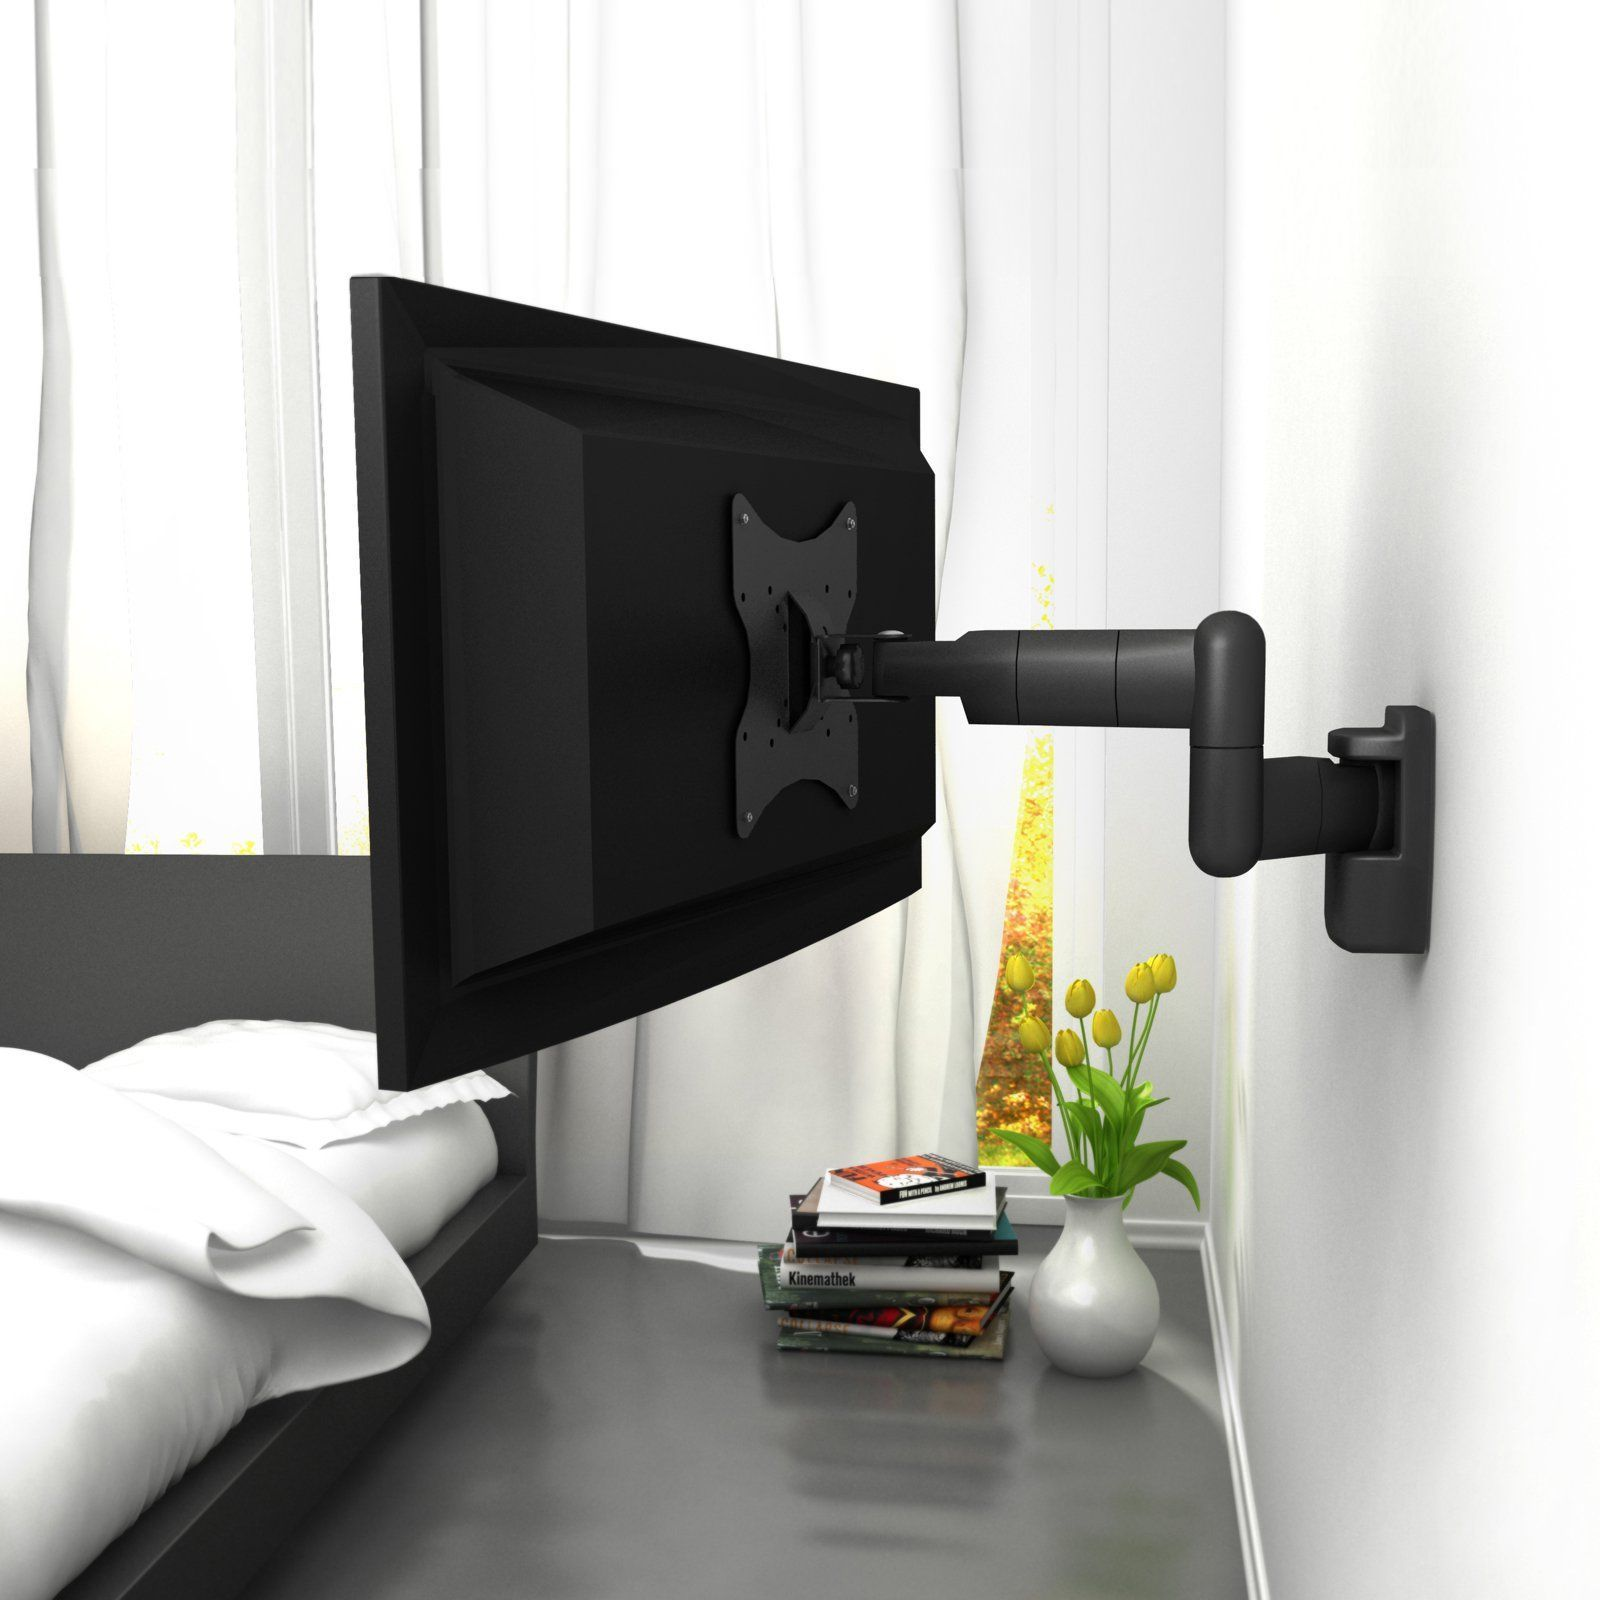 Sonax Lm 1230 Tv Motion Wall Mount For 10 32 In Tvs Lm 1230